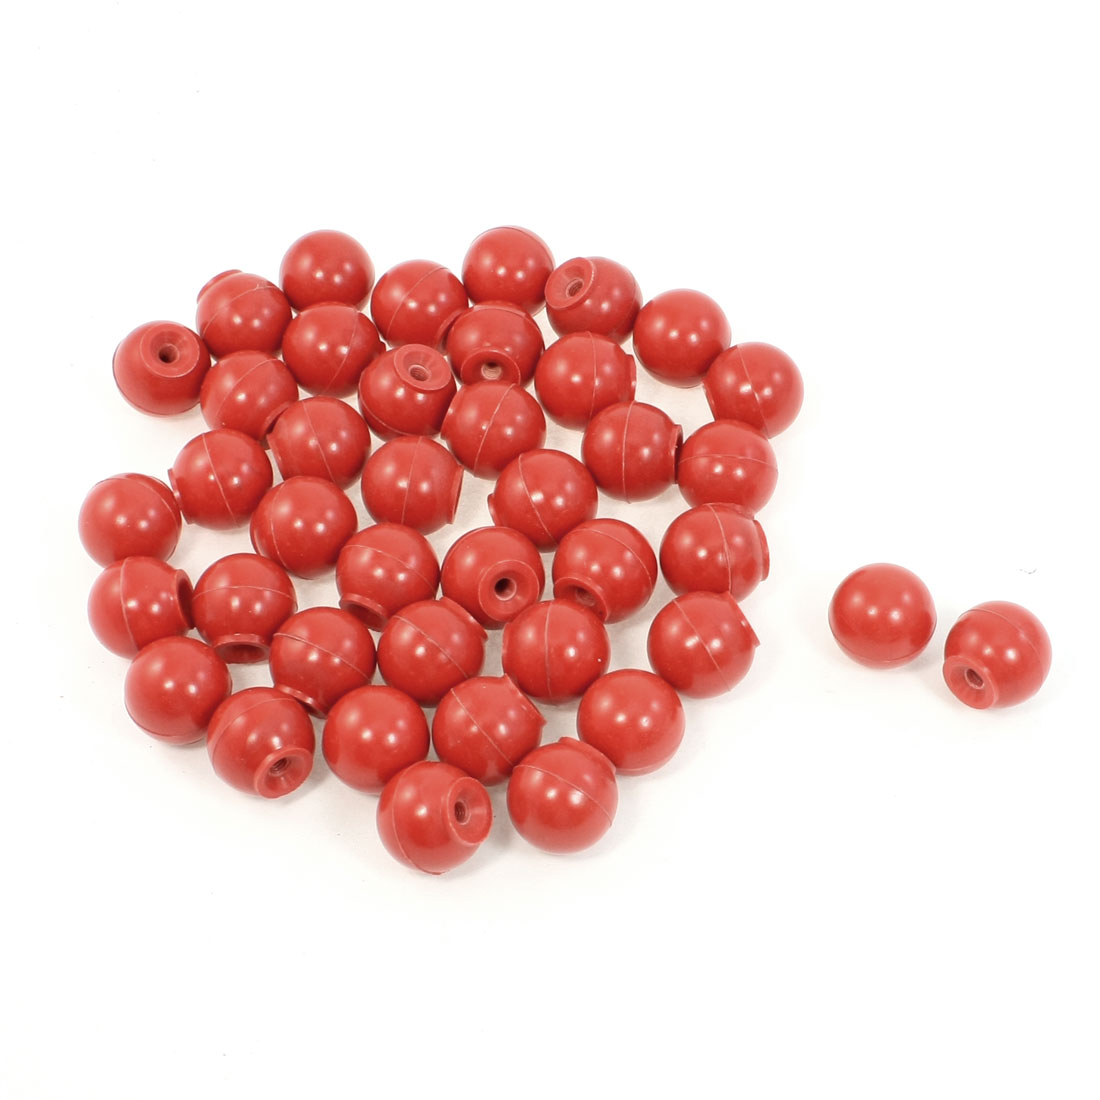 40Pcs 6mm Dia Threaded Red Plastic Ball Knob Round Handle for Machine Tool